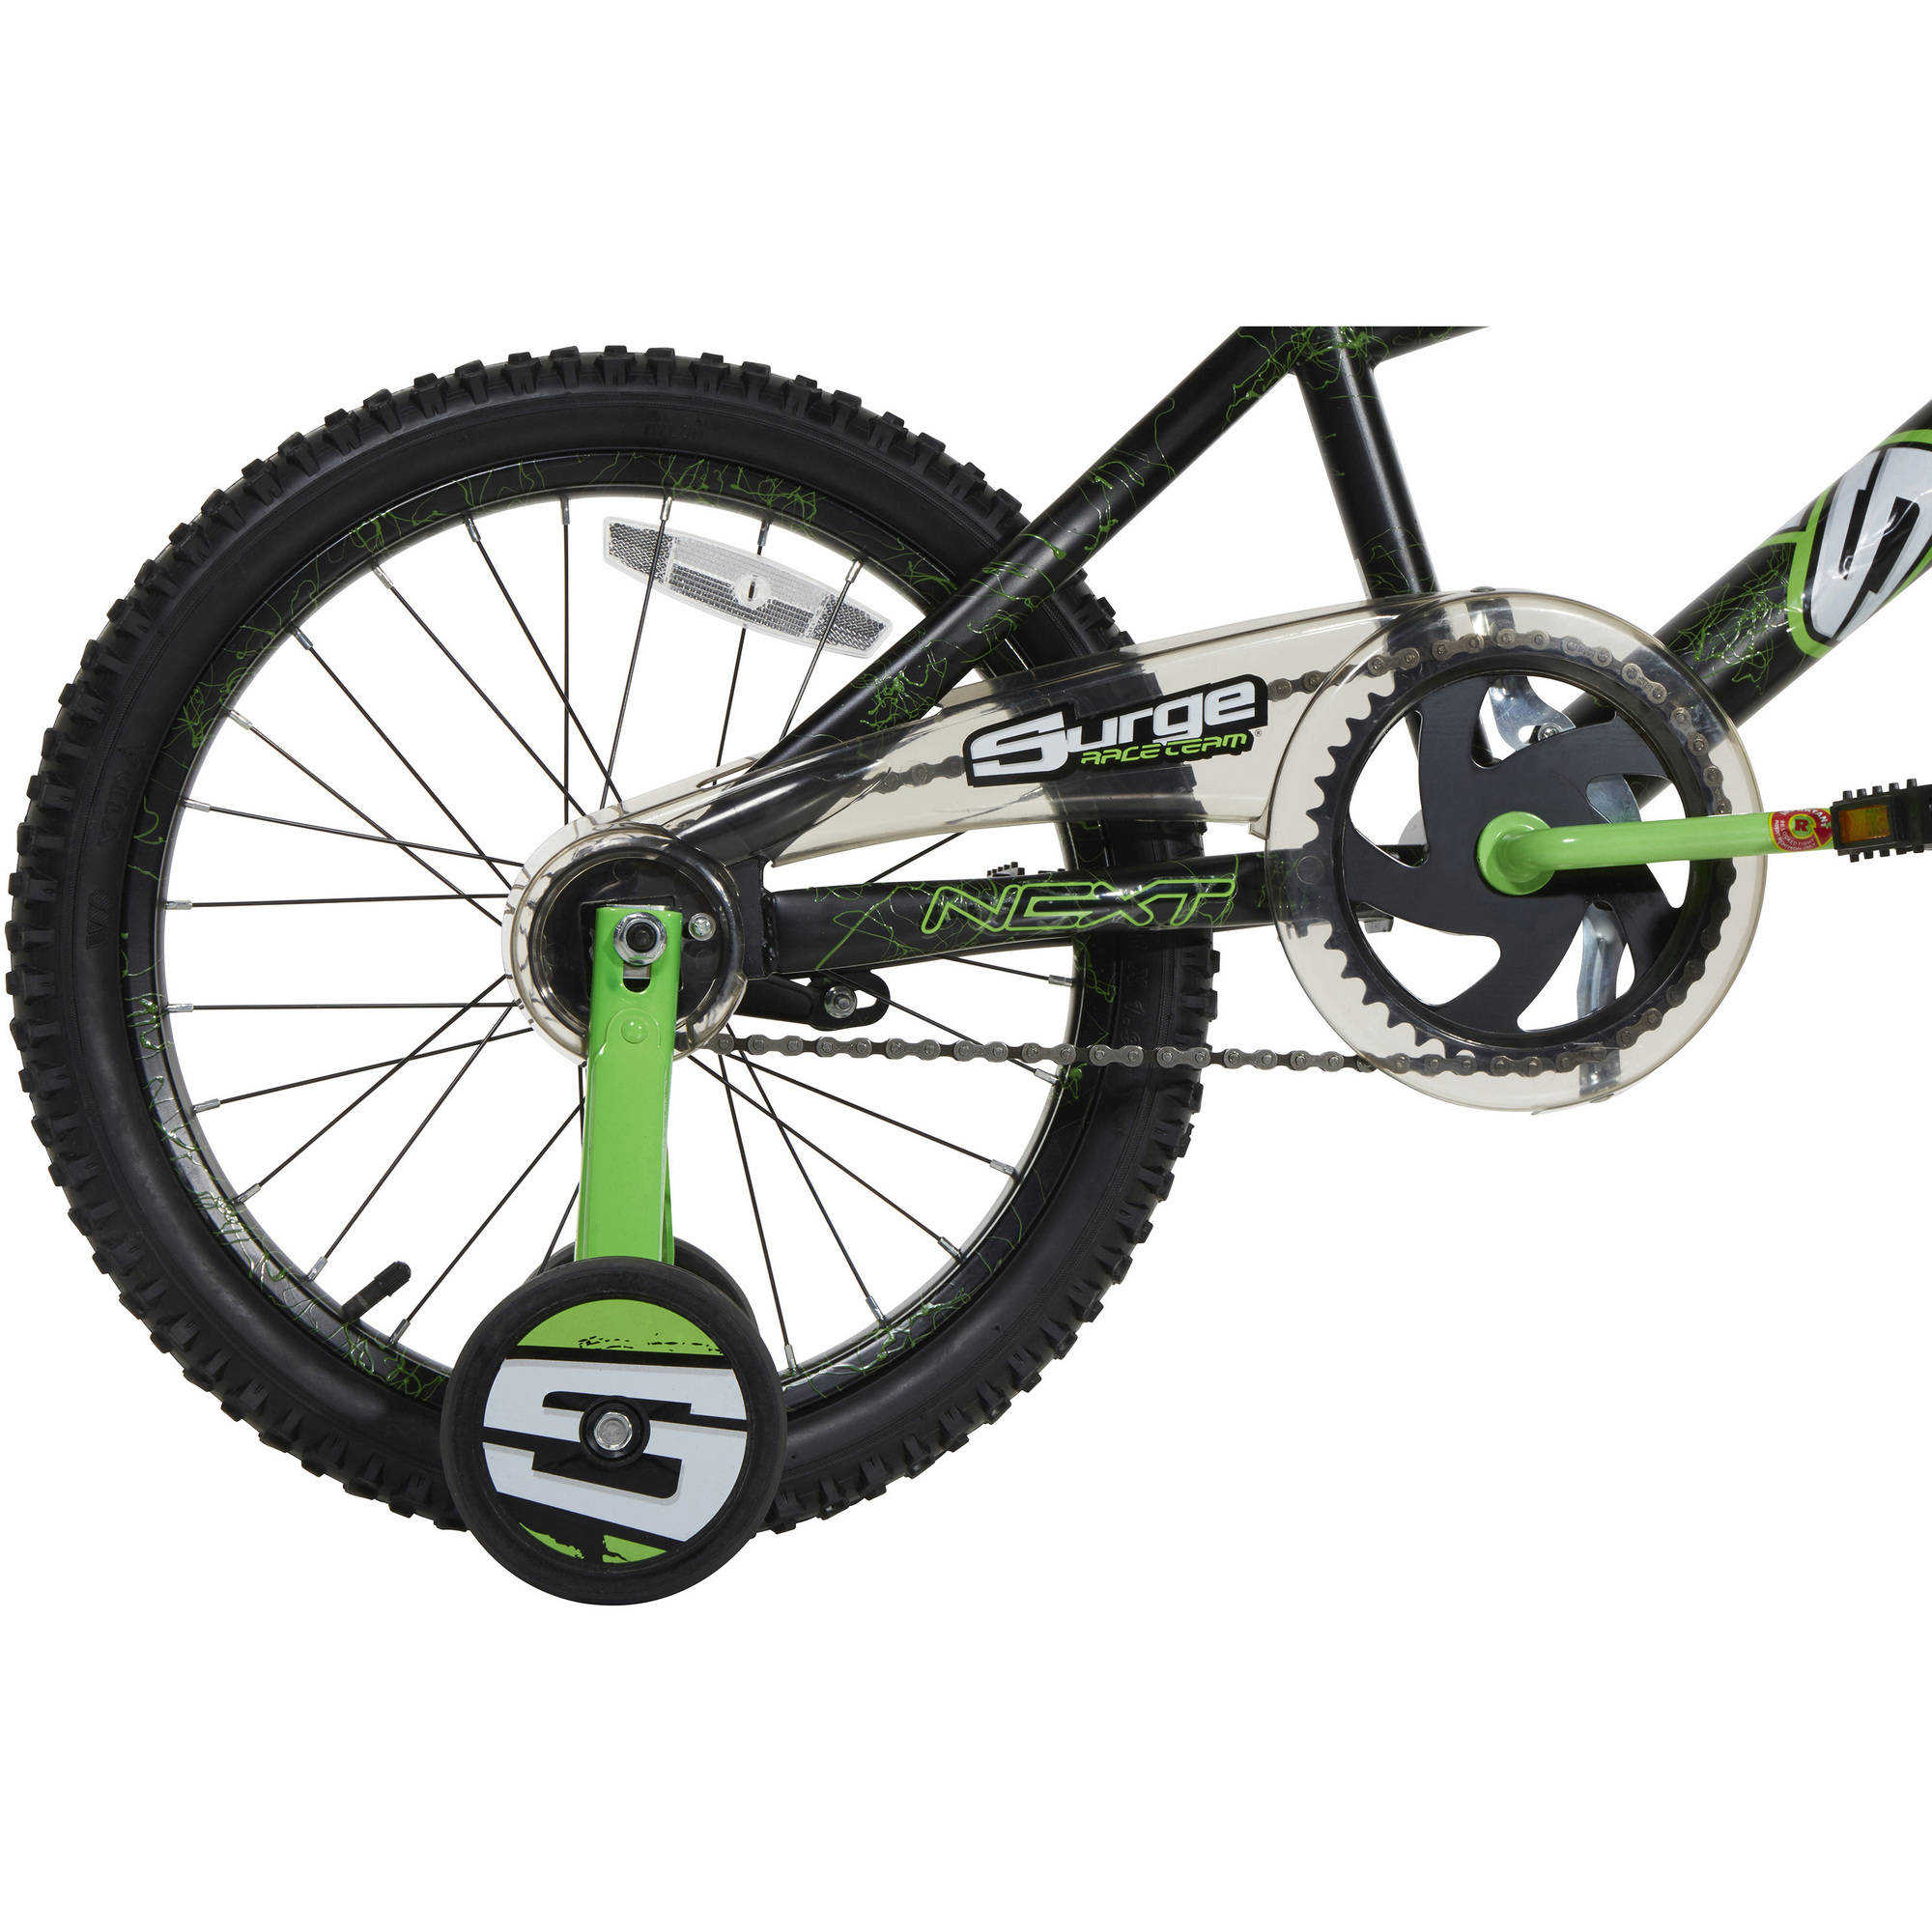 "Next 18"" Surge Boys BMX Bike Black Green Walmart"